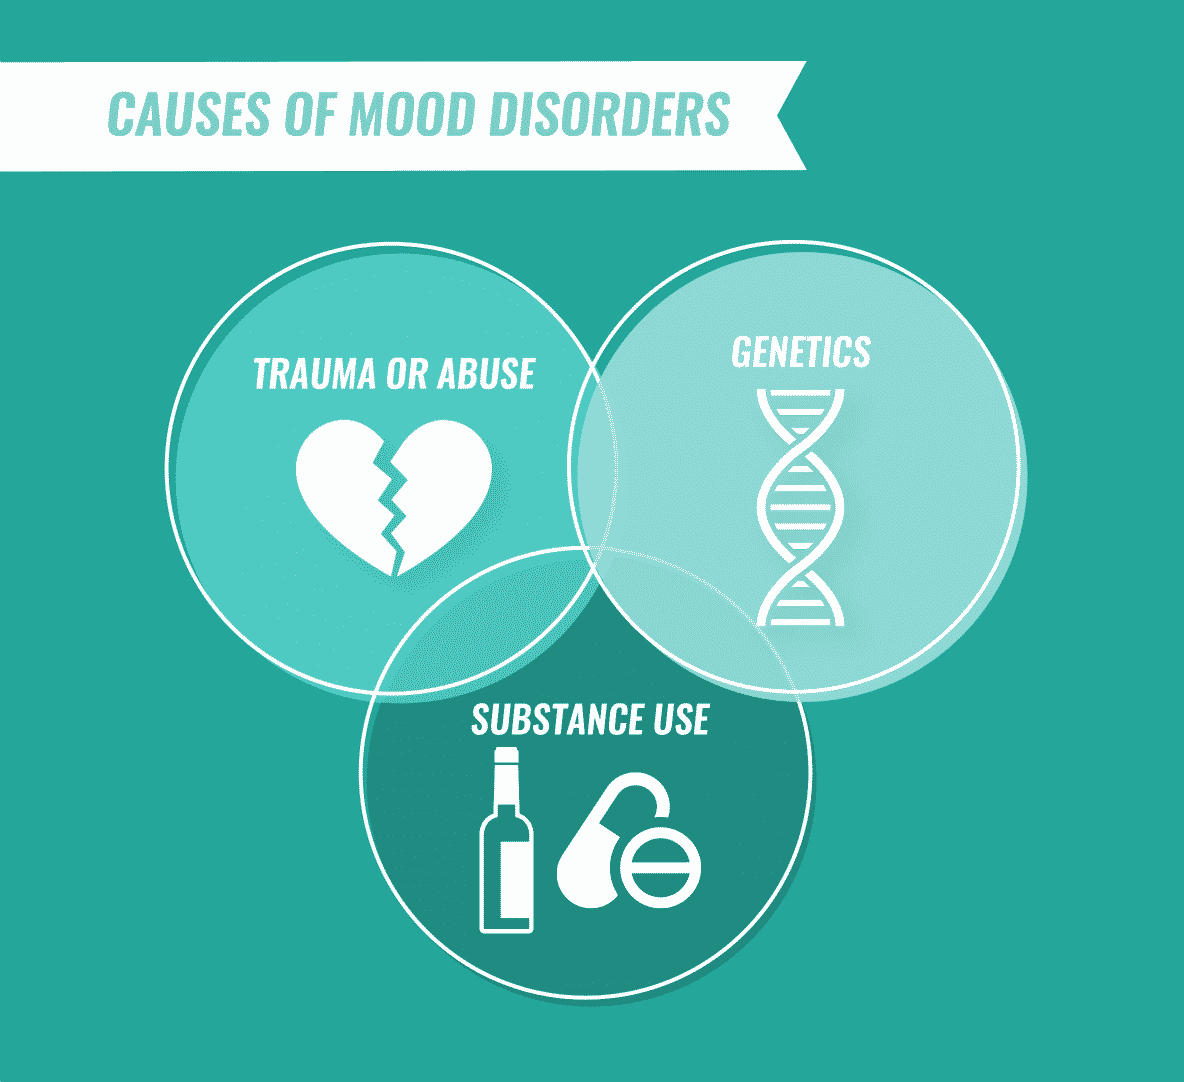 causes of mood disorders infographic